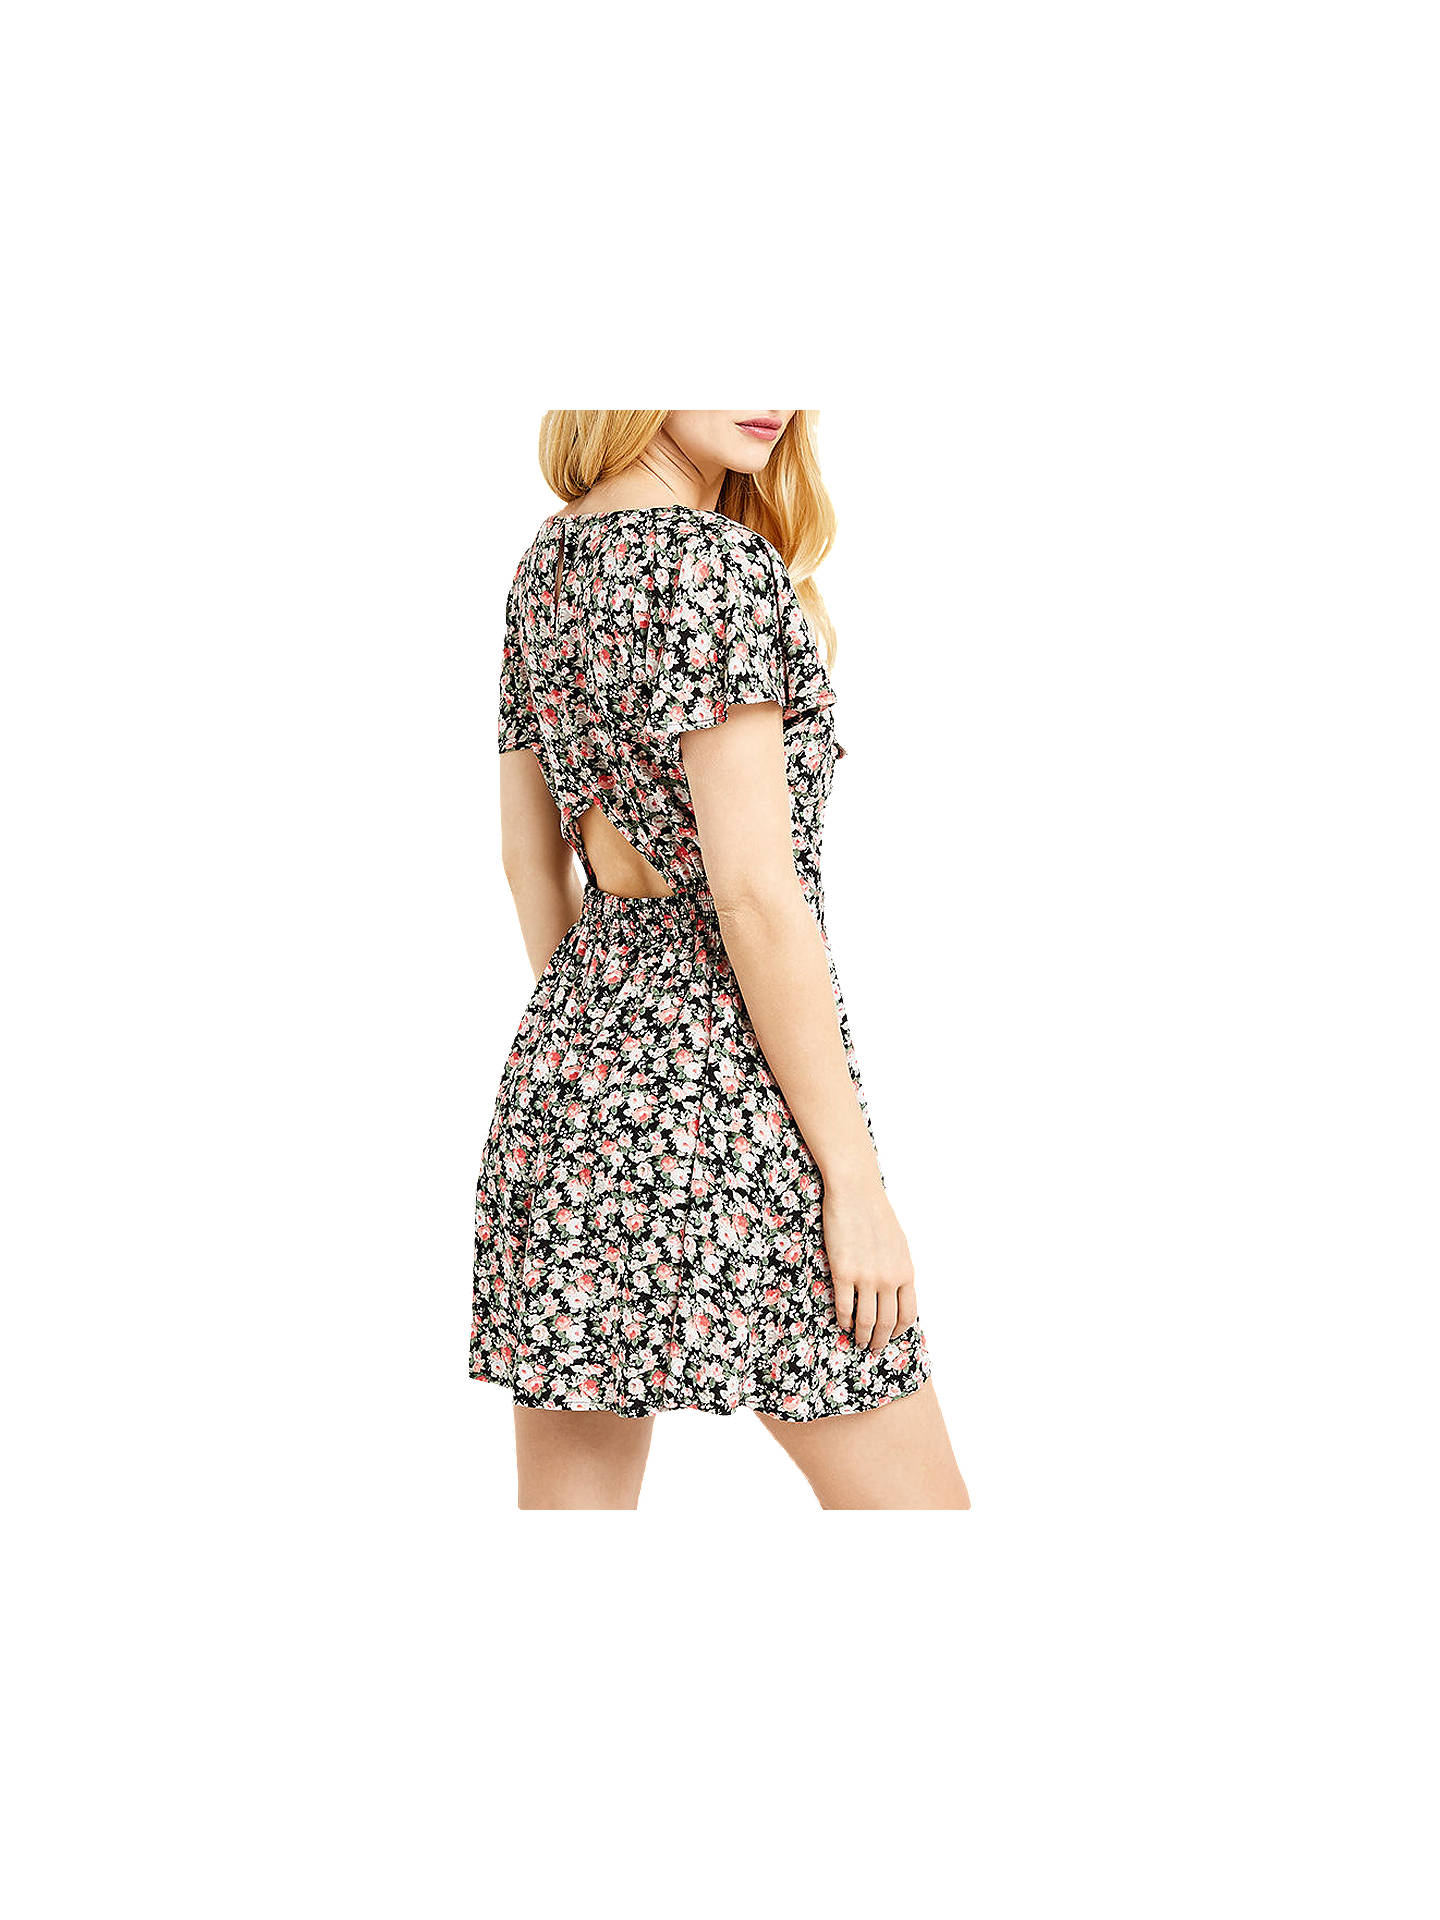 BuyOasis Ditsy Tie Front Playsuit, Multi, 6 Online at johnlewis.com